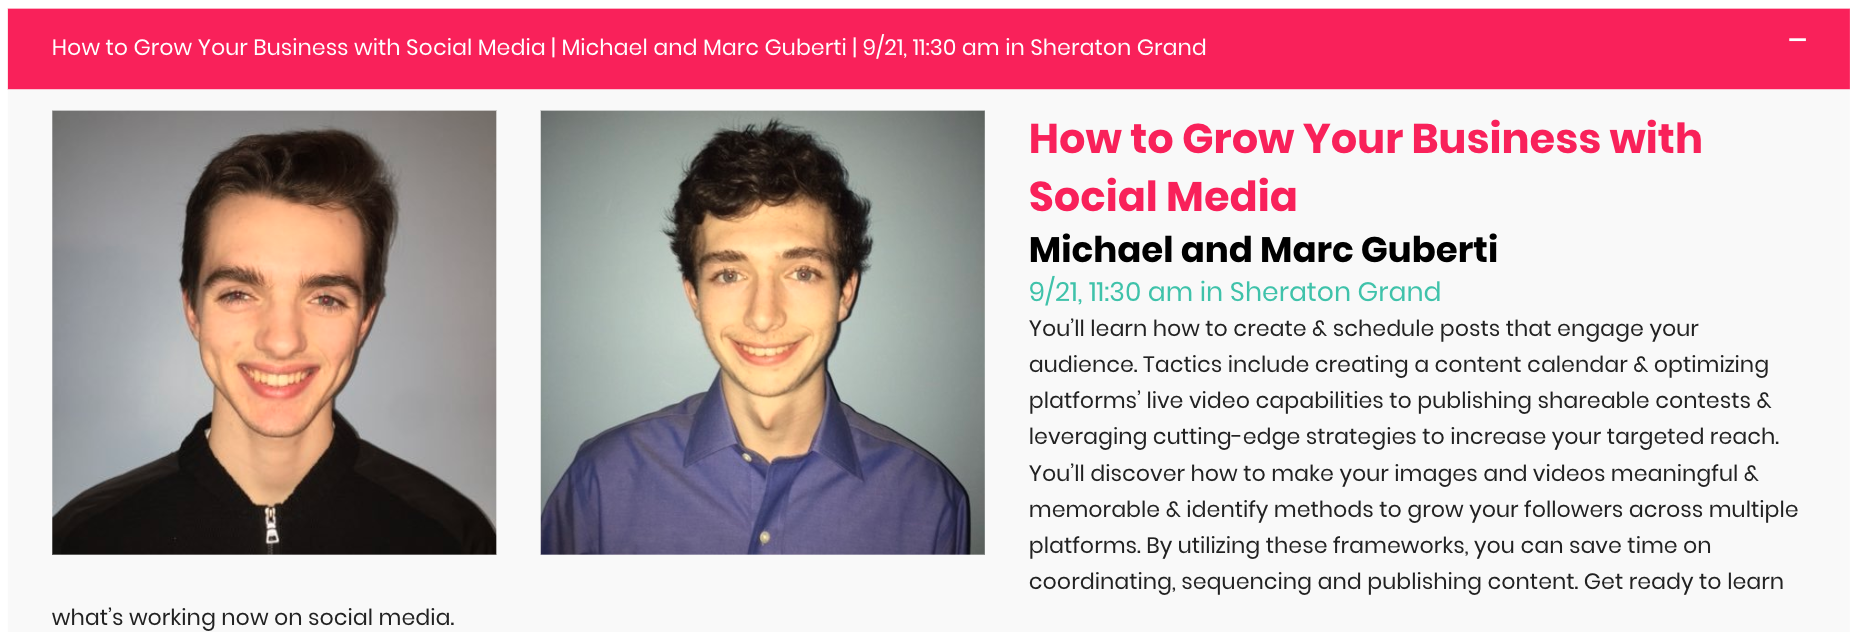 How To Grow Your Business With Social Media | Michael & Marc Guberti